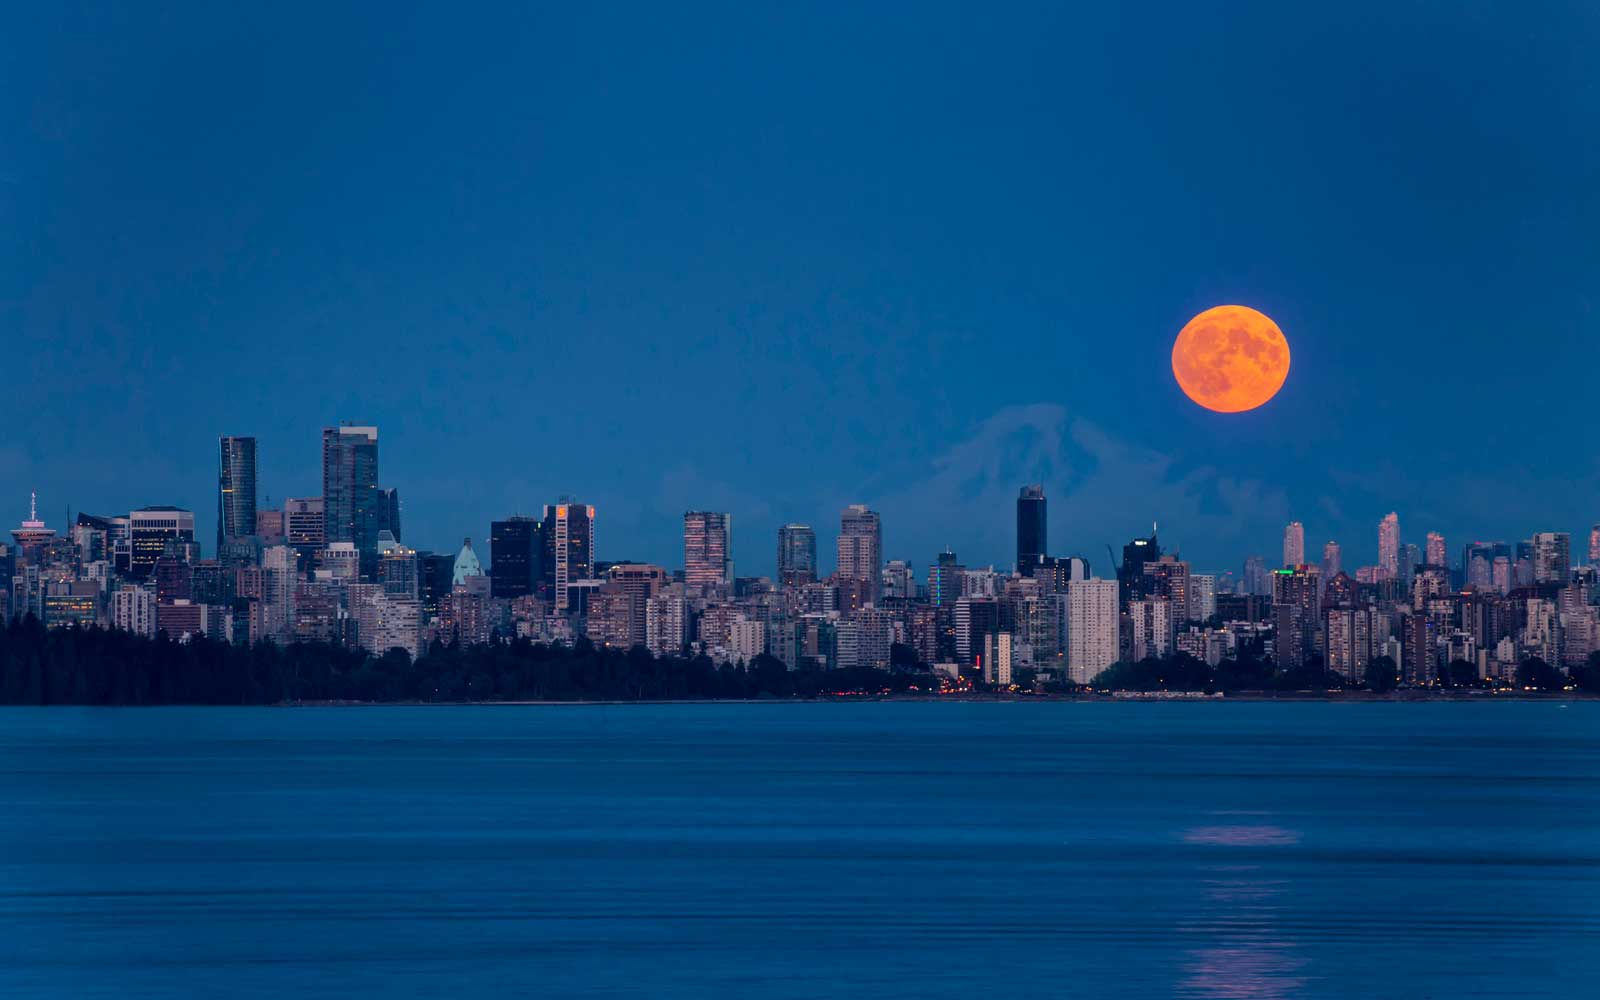 Full moon over Vancouver, Canada